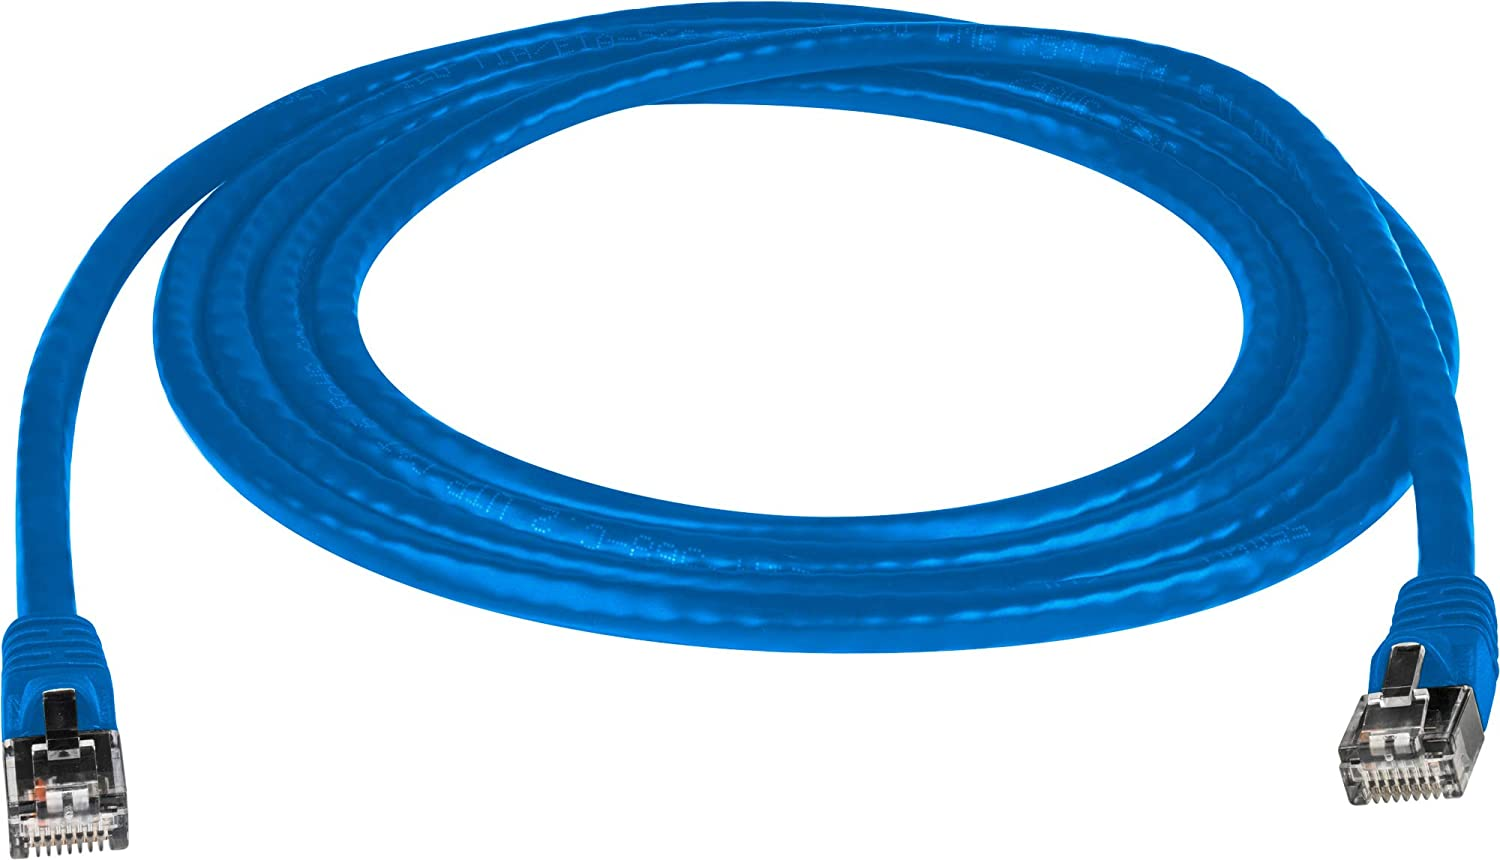 Molded Utp Cat6 Cable 24Awg 50U 75 Foot Blue